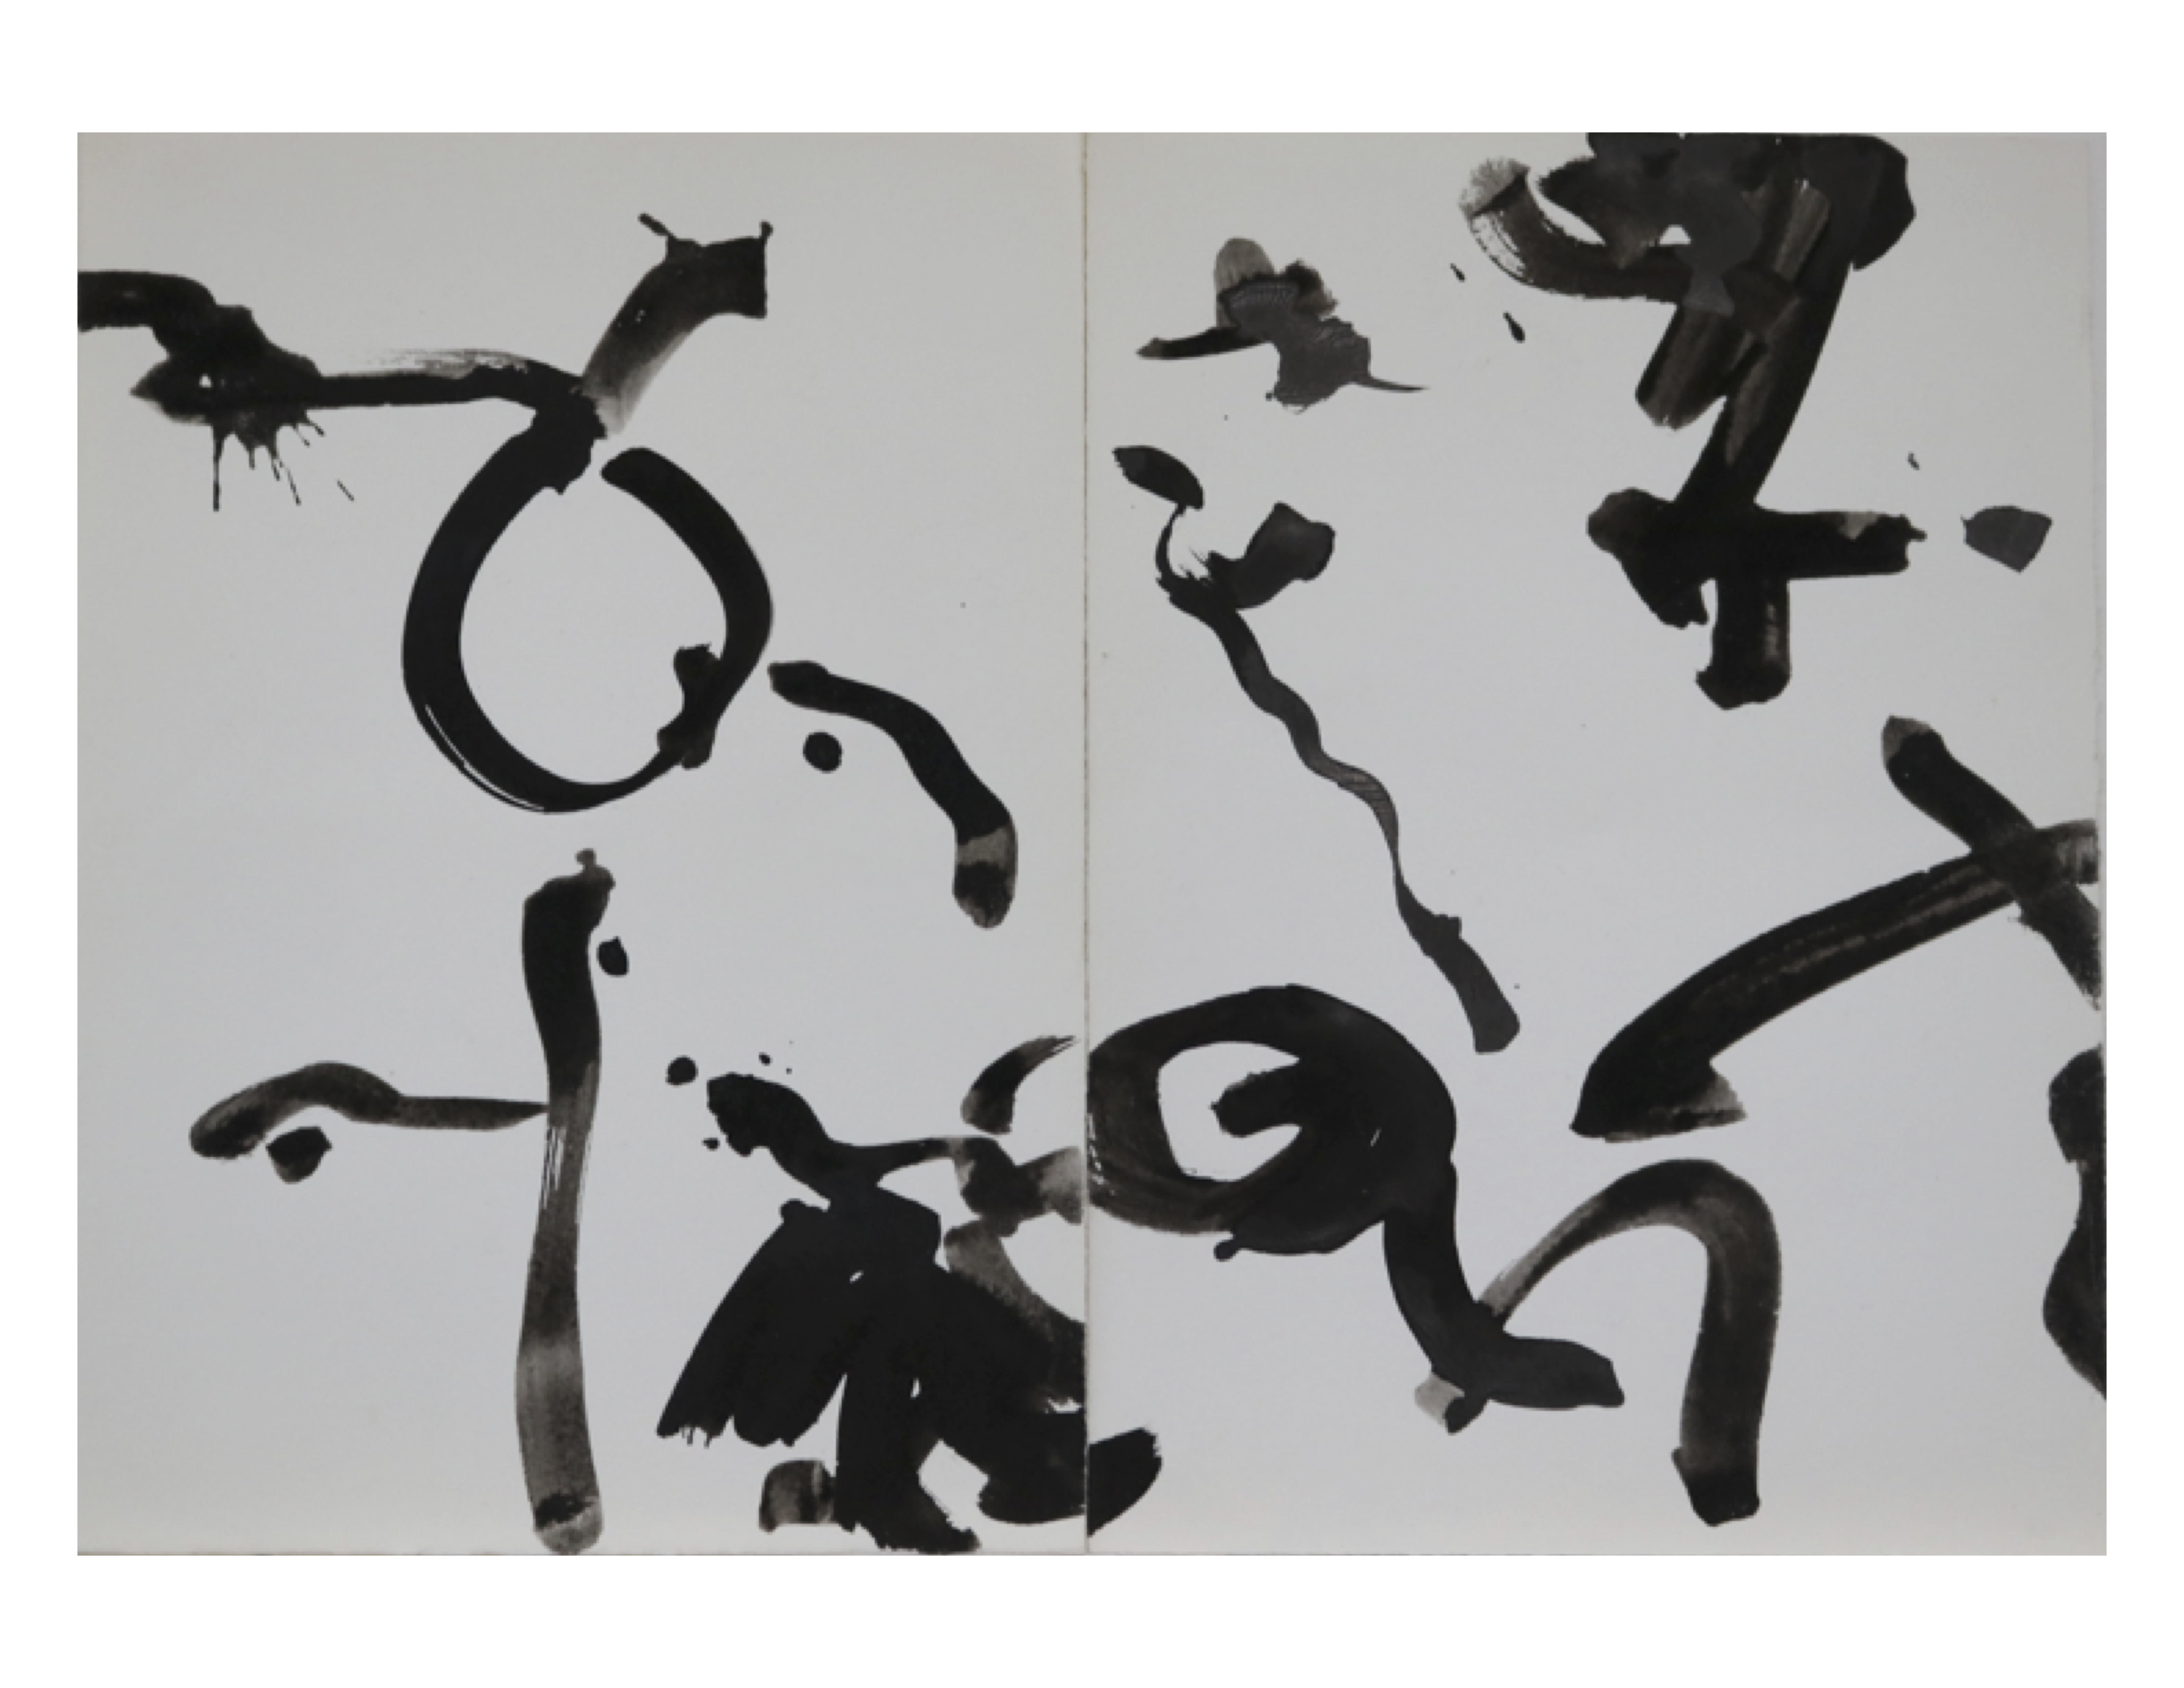 Dyptych 3, March 10,1979, ink on paper, each sheet 25 cm x 35.2 cm